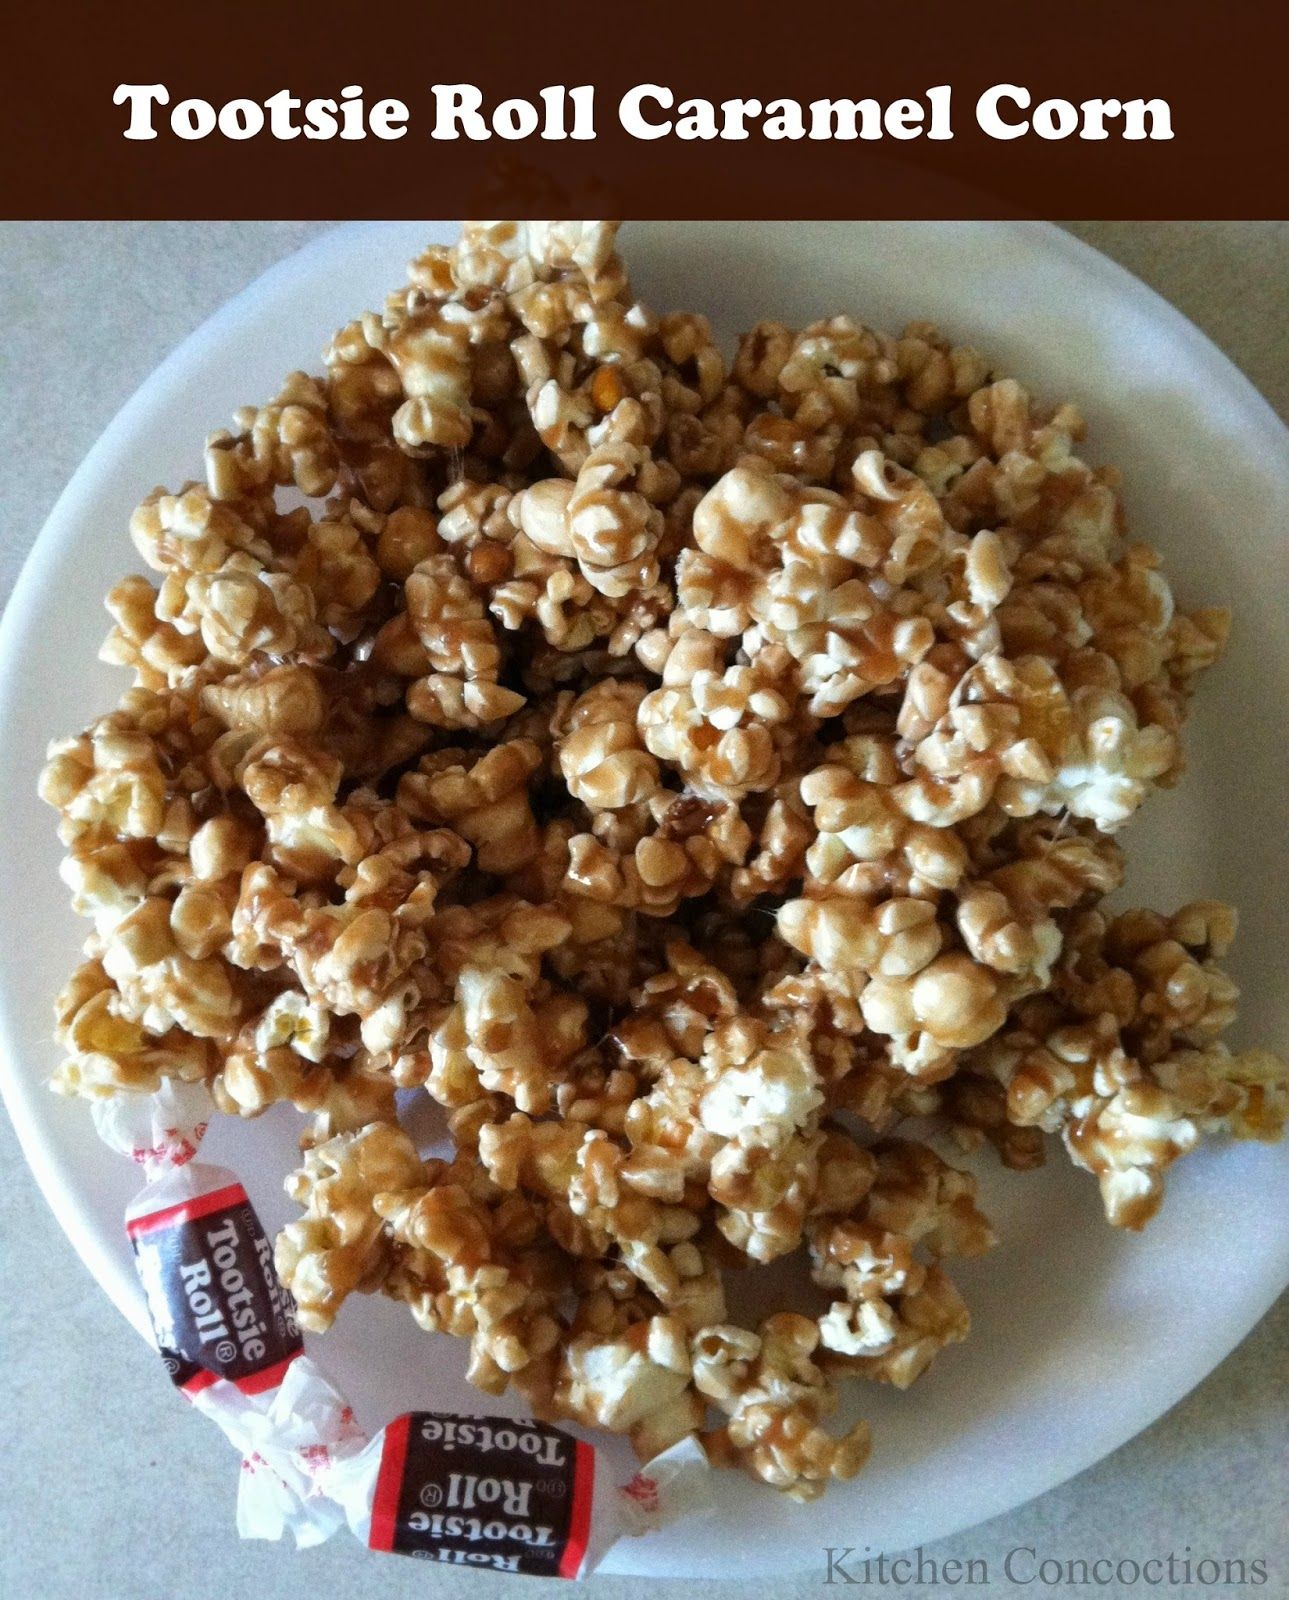 Kitchen Concoctions: Tootsie Roll Caramel Corn